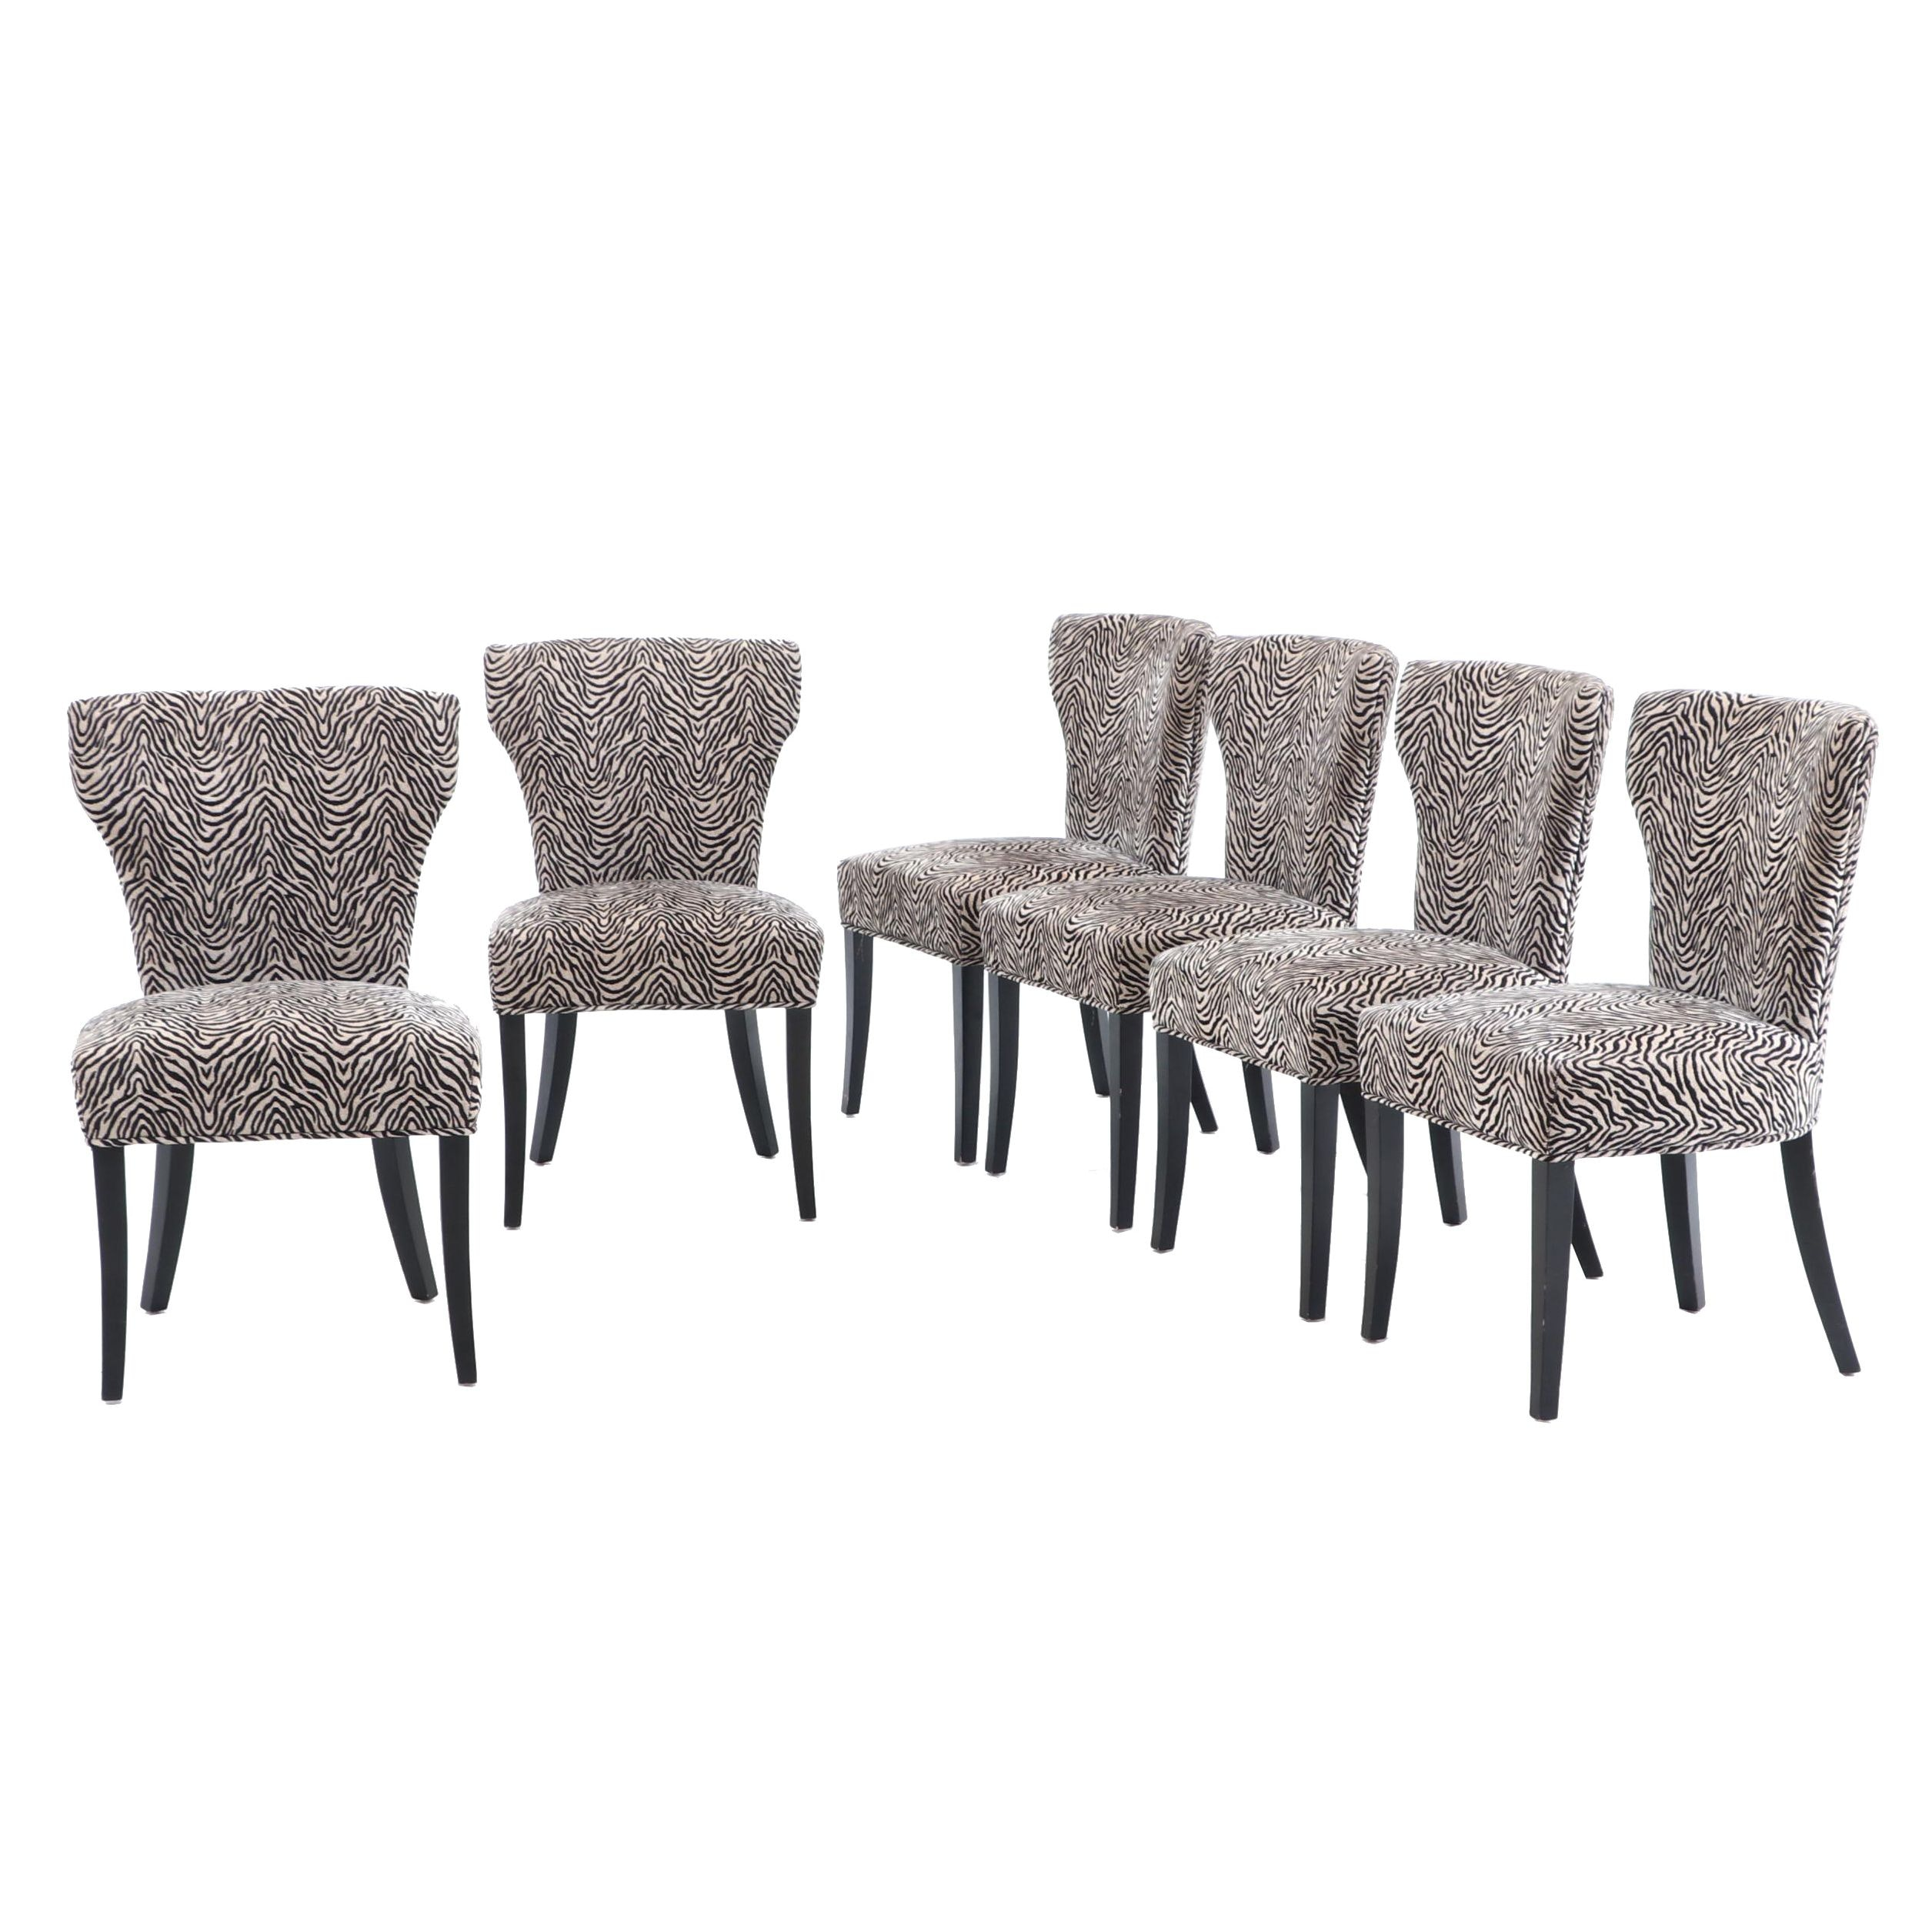 Six Zebra Patterned Upholstered Side Dining Chairs